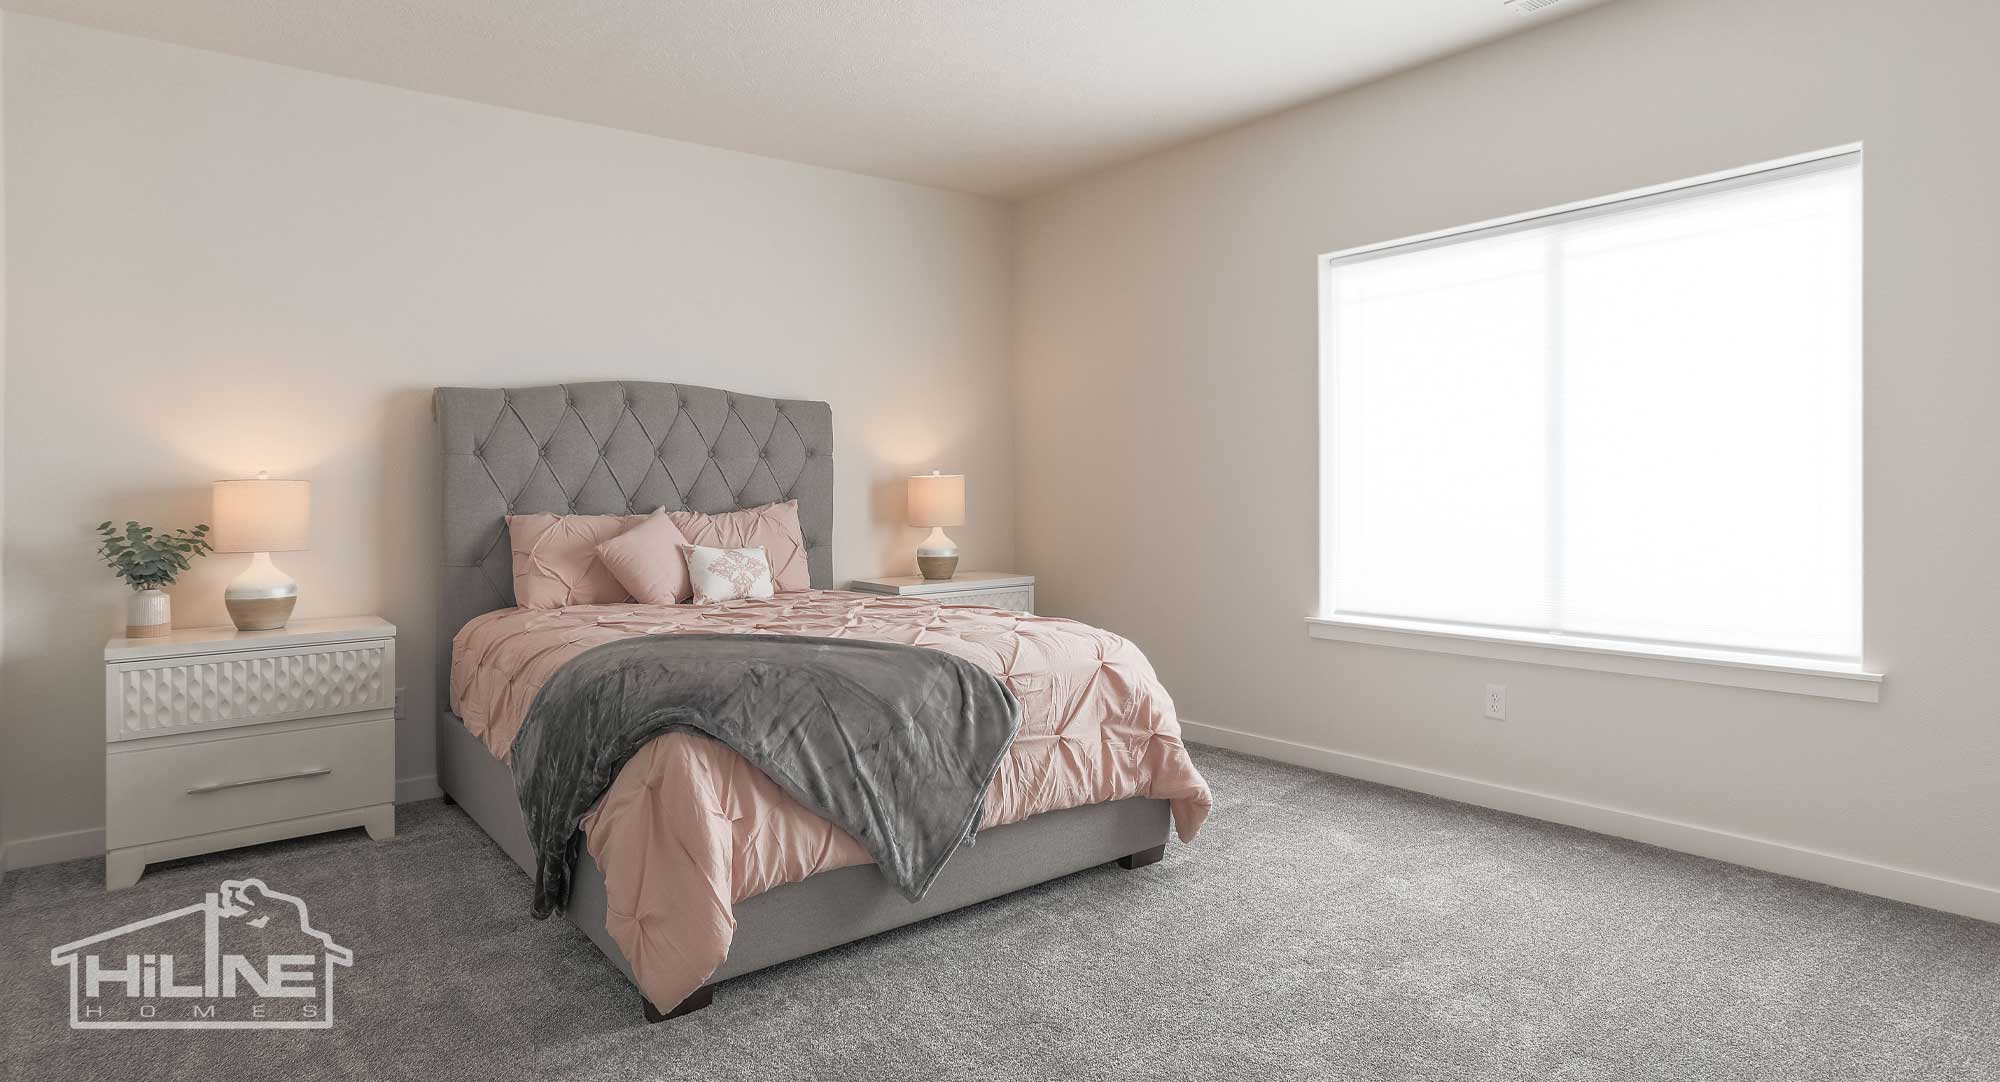 Image of HiLine Homes of Meridian Master Suite